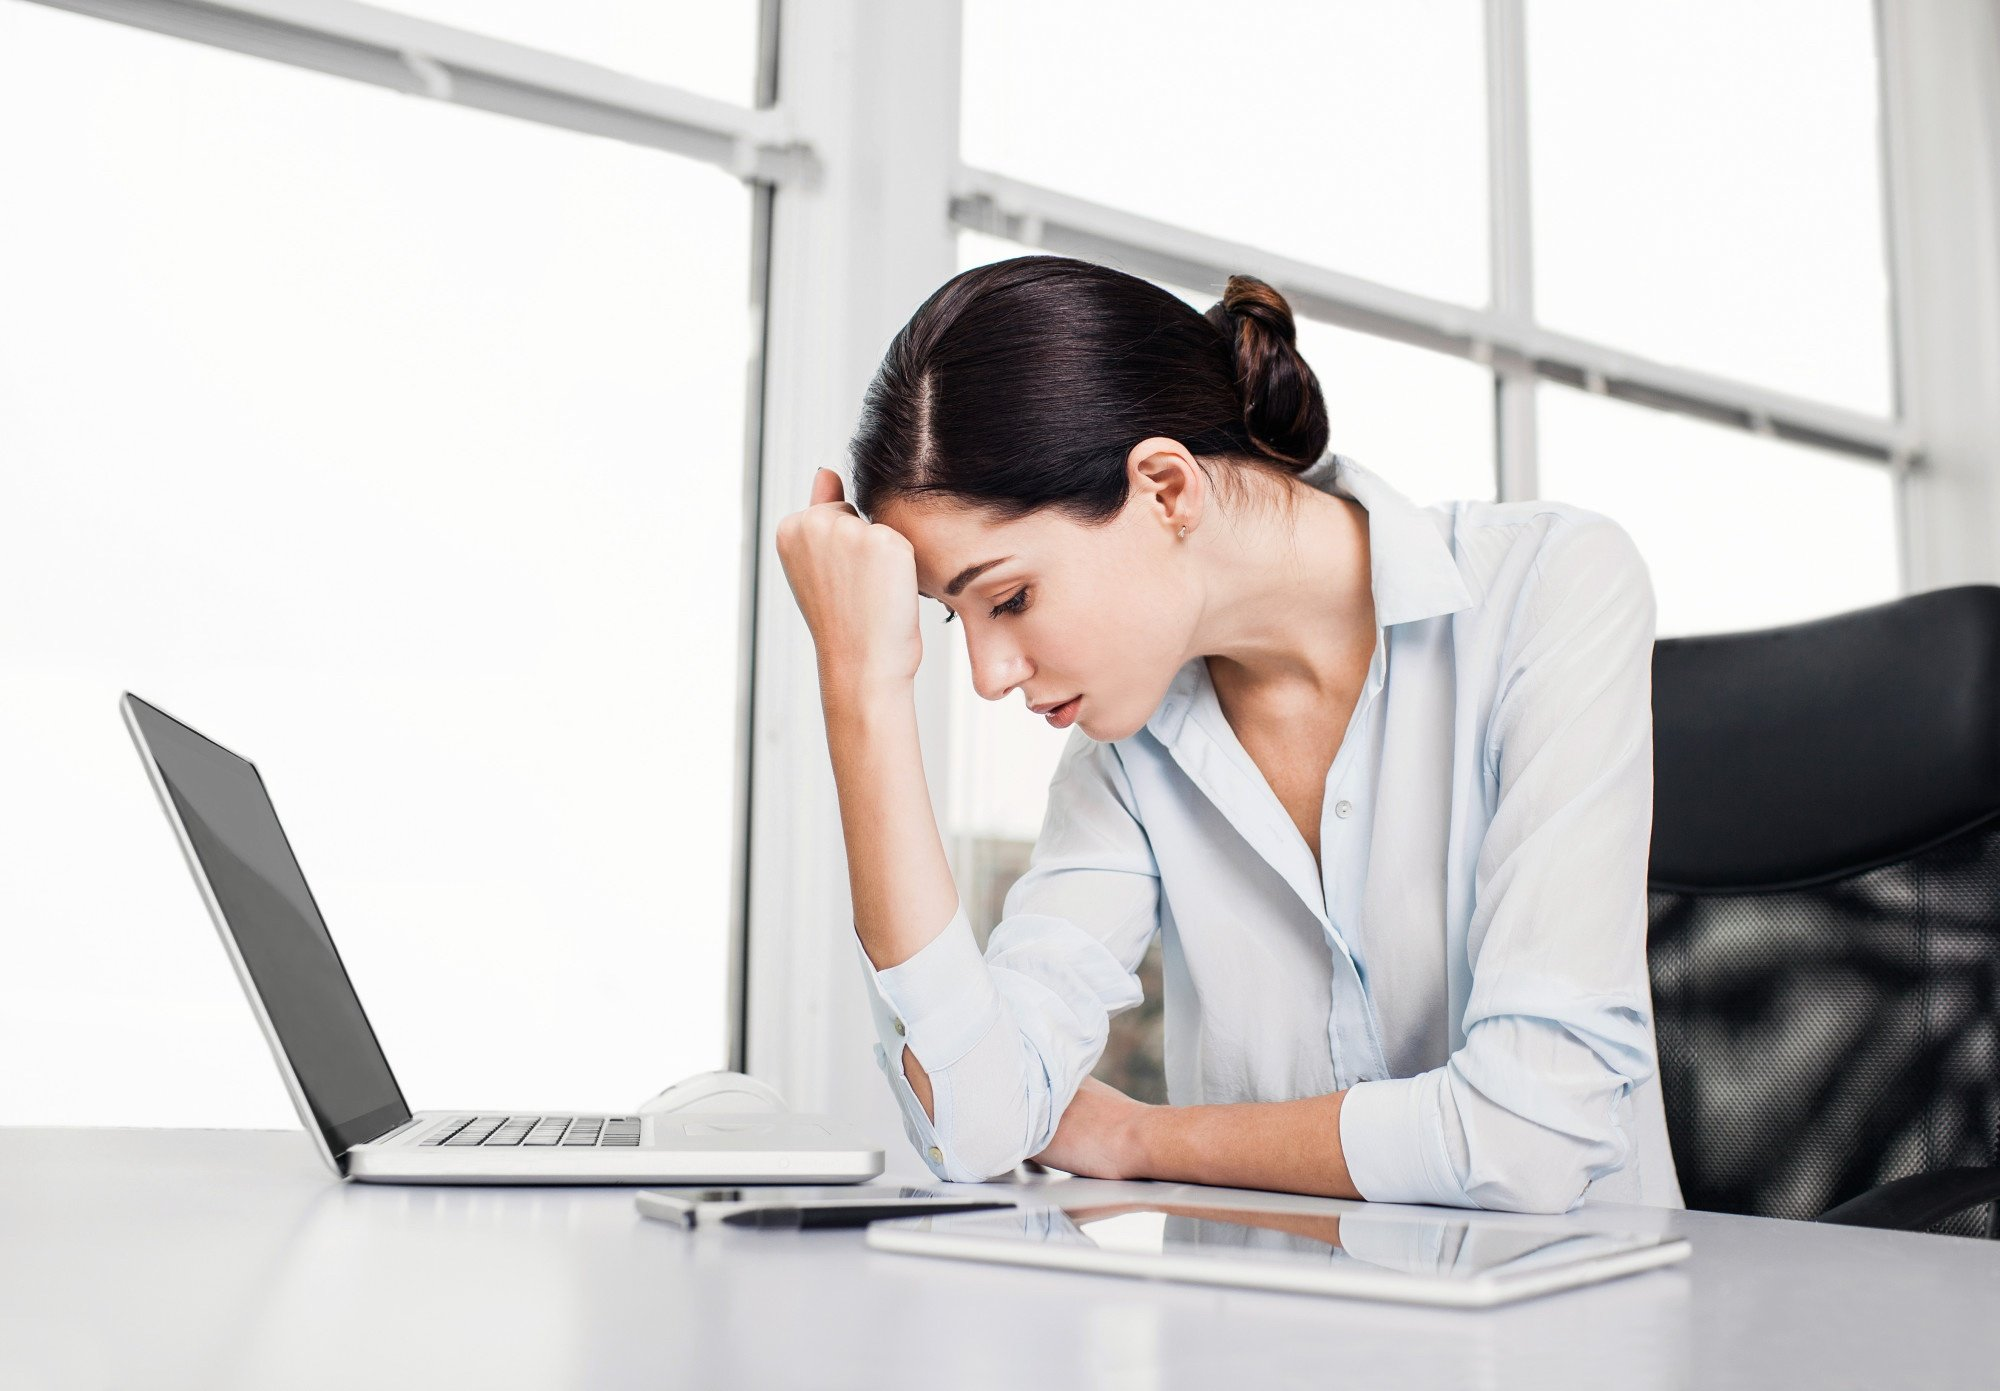 woman with hand on head sitting at desk with laptop looking upset